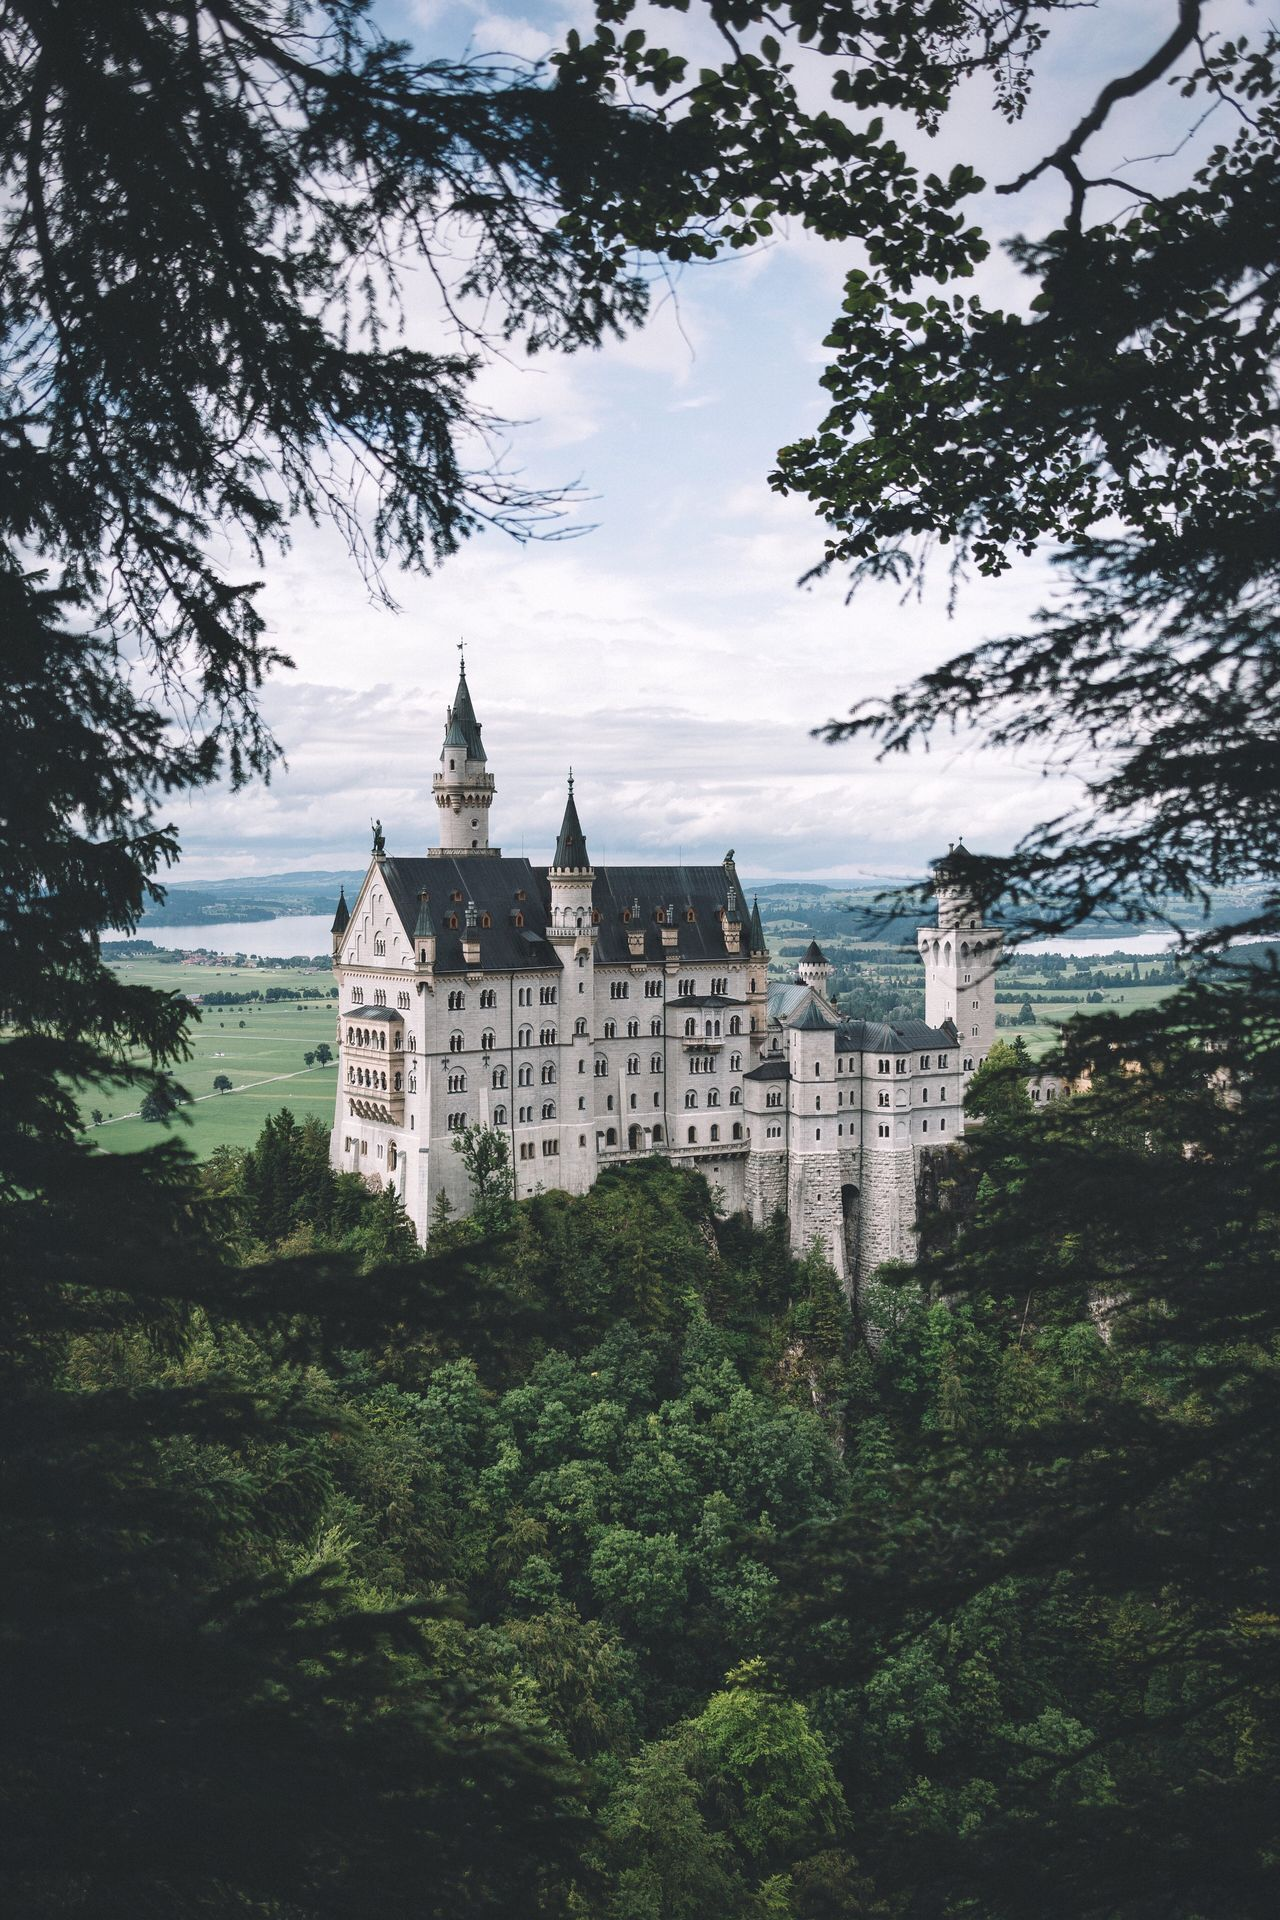 Framed by nature Travel Neuschwanstein Germany Tree Building Exterior Architecture Built Structure Sky Growth Outdoors No People Travel Destinations Branch Nature Low Angle View Day